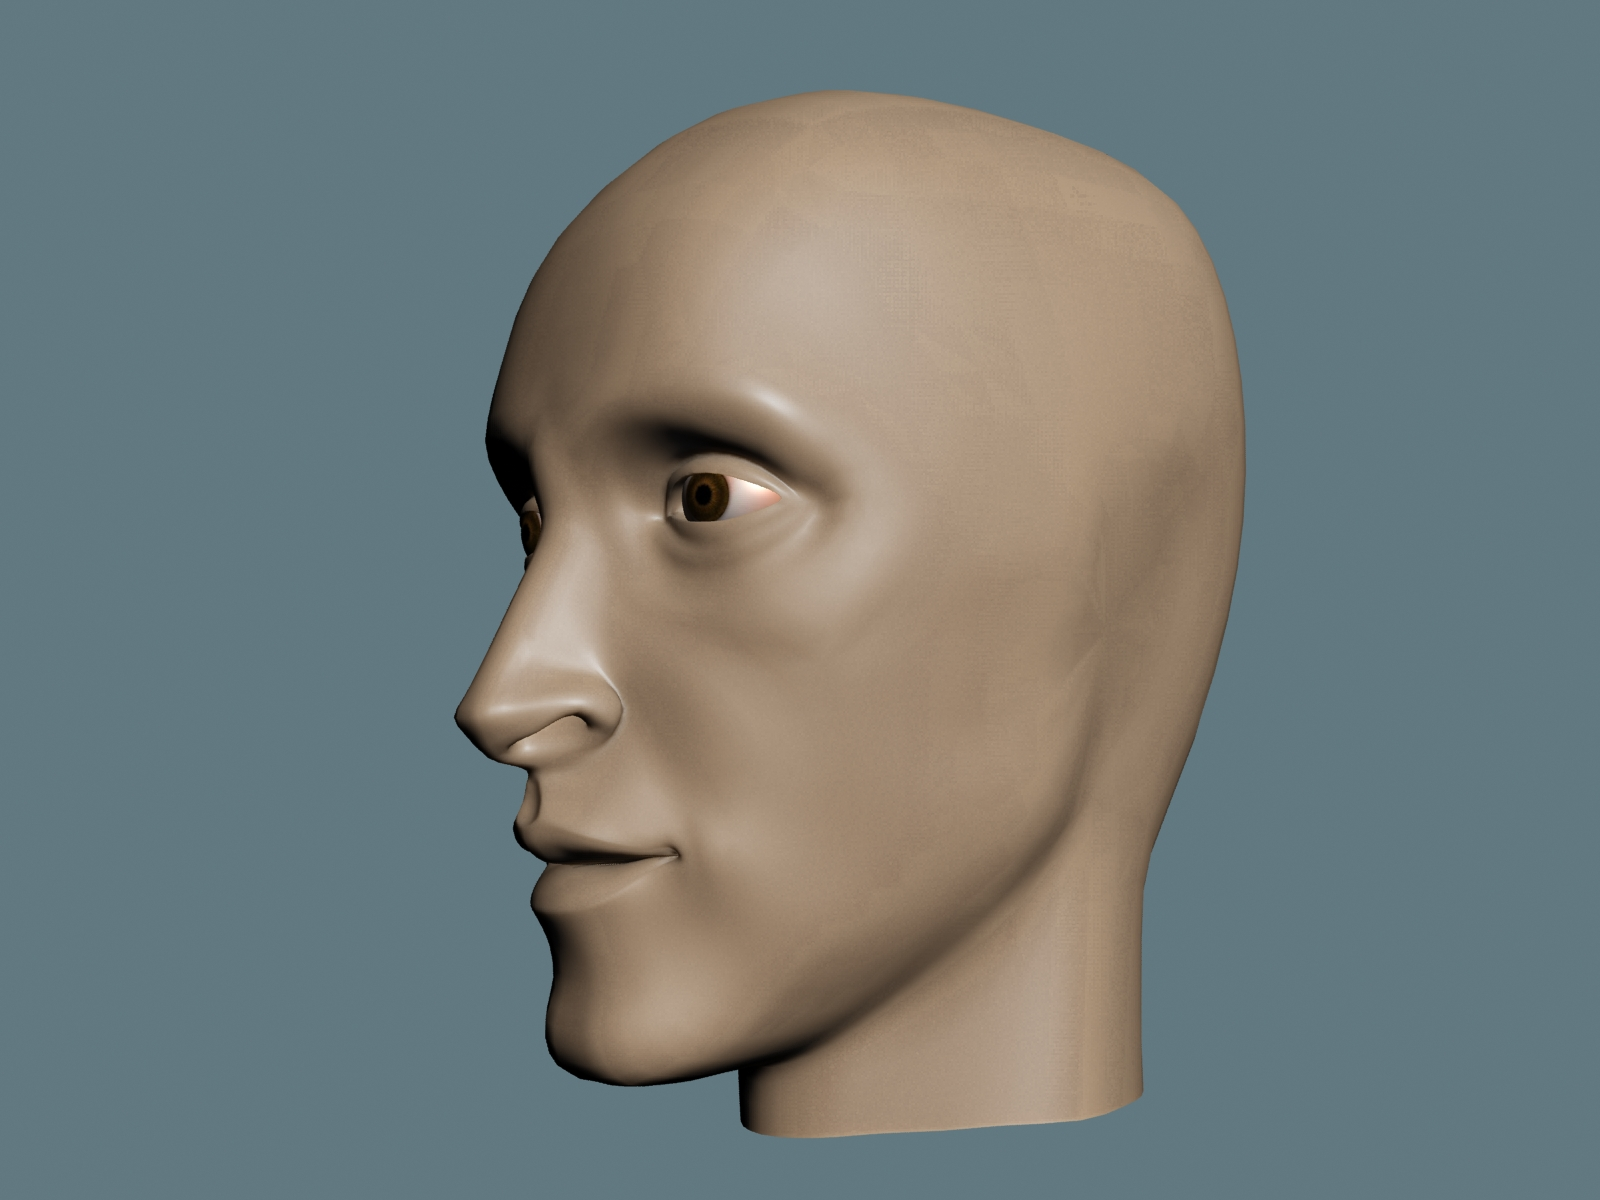 Vikky animations 3ds max face model for 3ds max face modeling